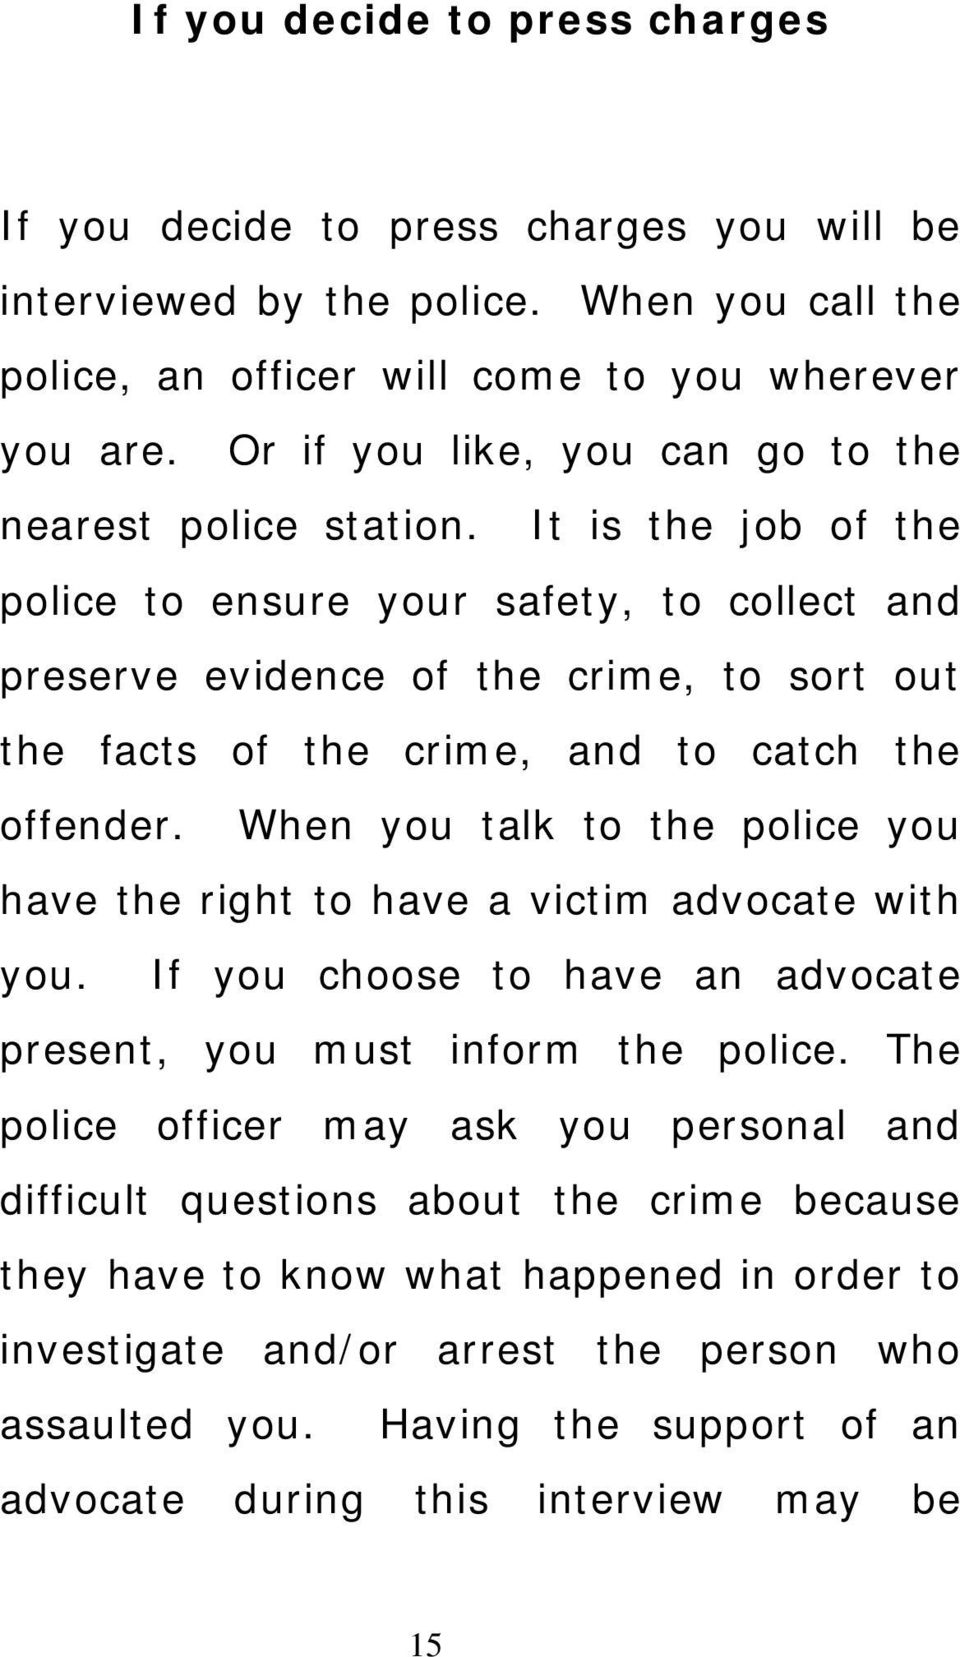 It is the job of the police to ensure your safety, to collect and preserve evidence of the crime, to sort out the facts of the crime, and to catch the offender.